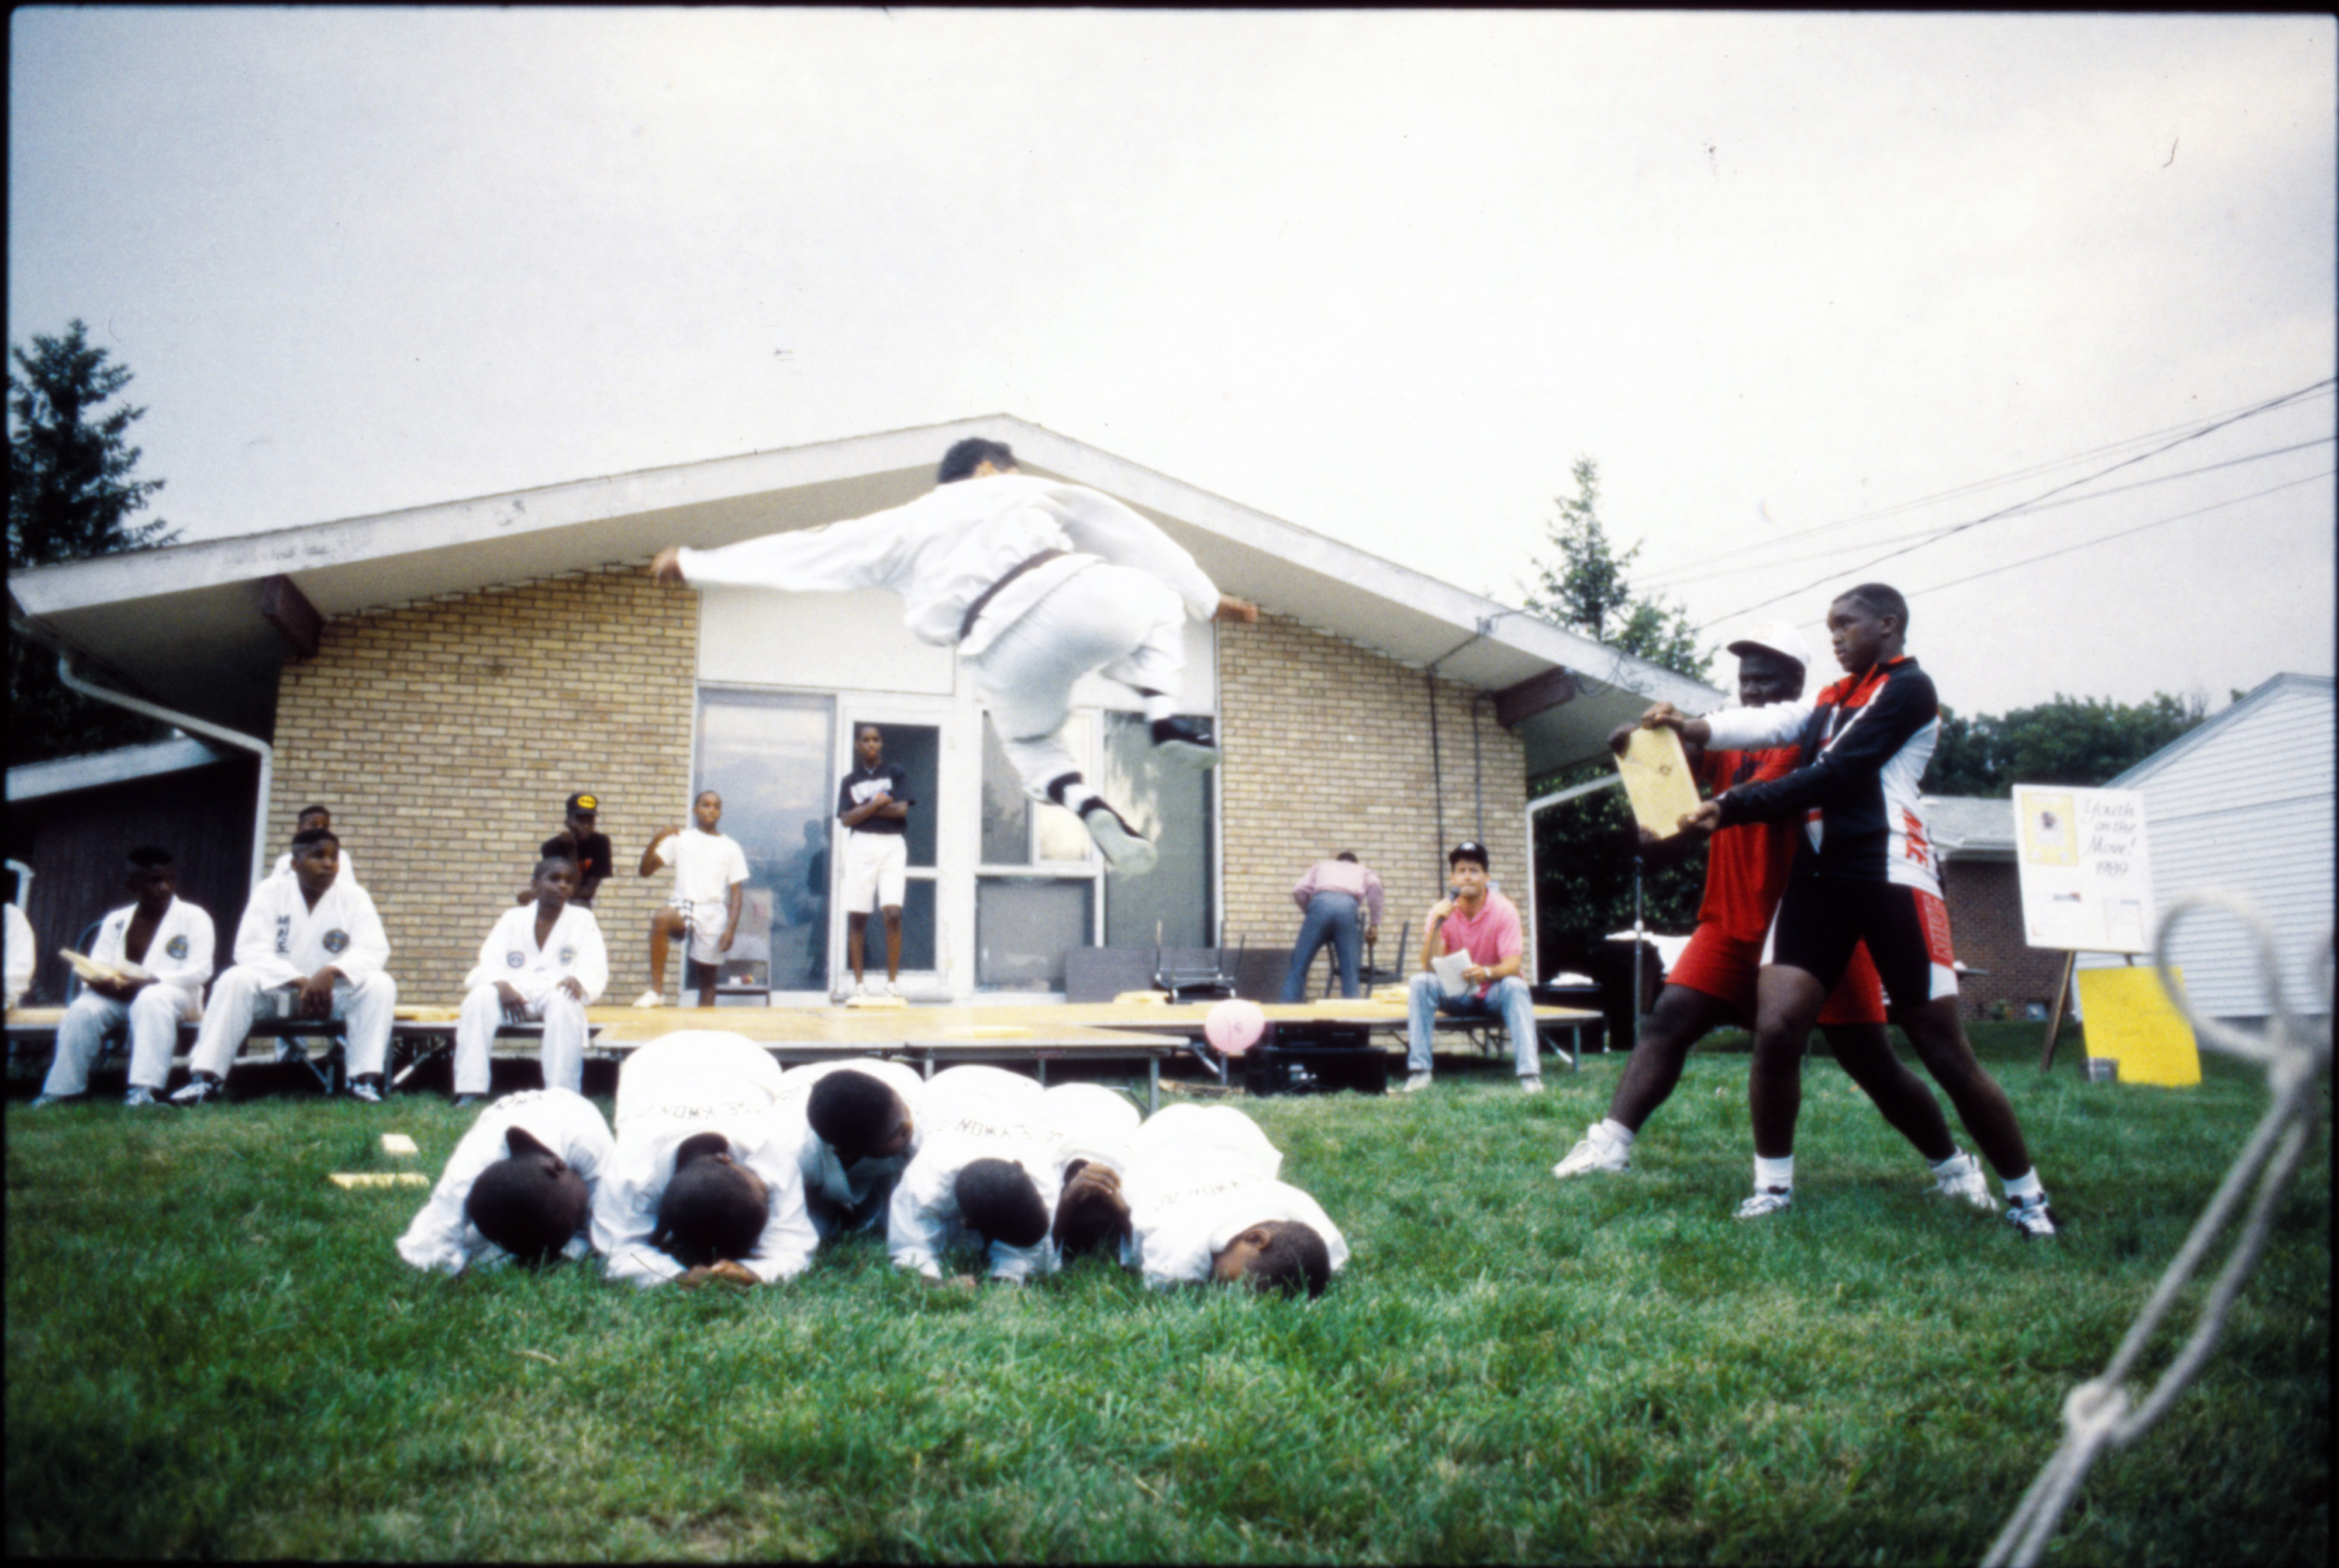 Tae Kwon Do at Peace Neighborhood Center Summer Camp Party, August 1989 image